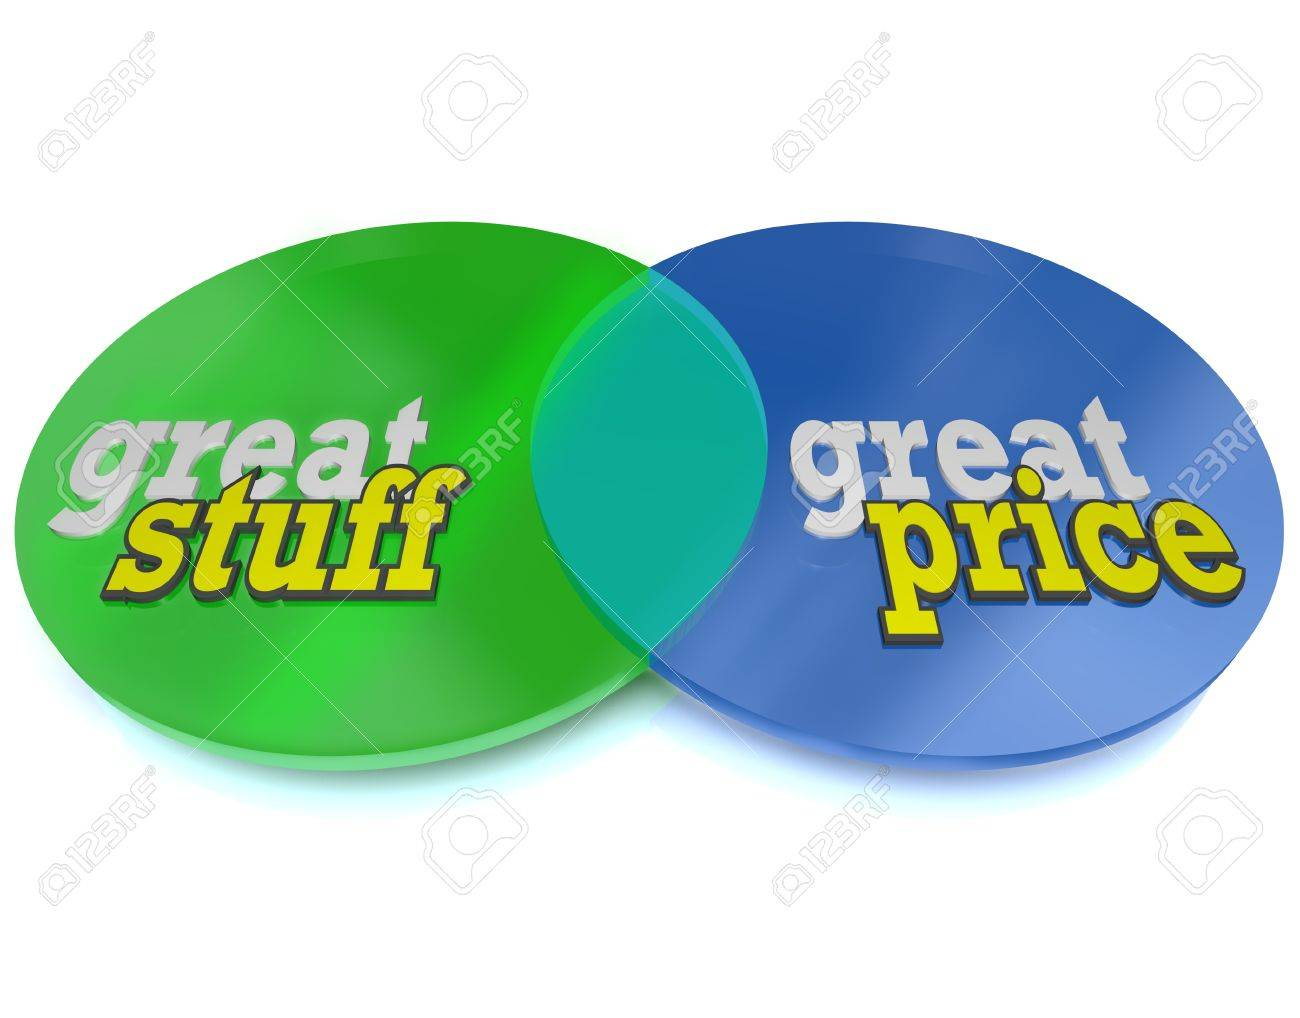 Great Stuff at a Great Price, two circles intersect in a Venn